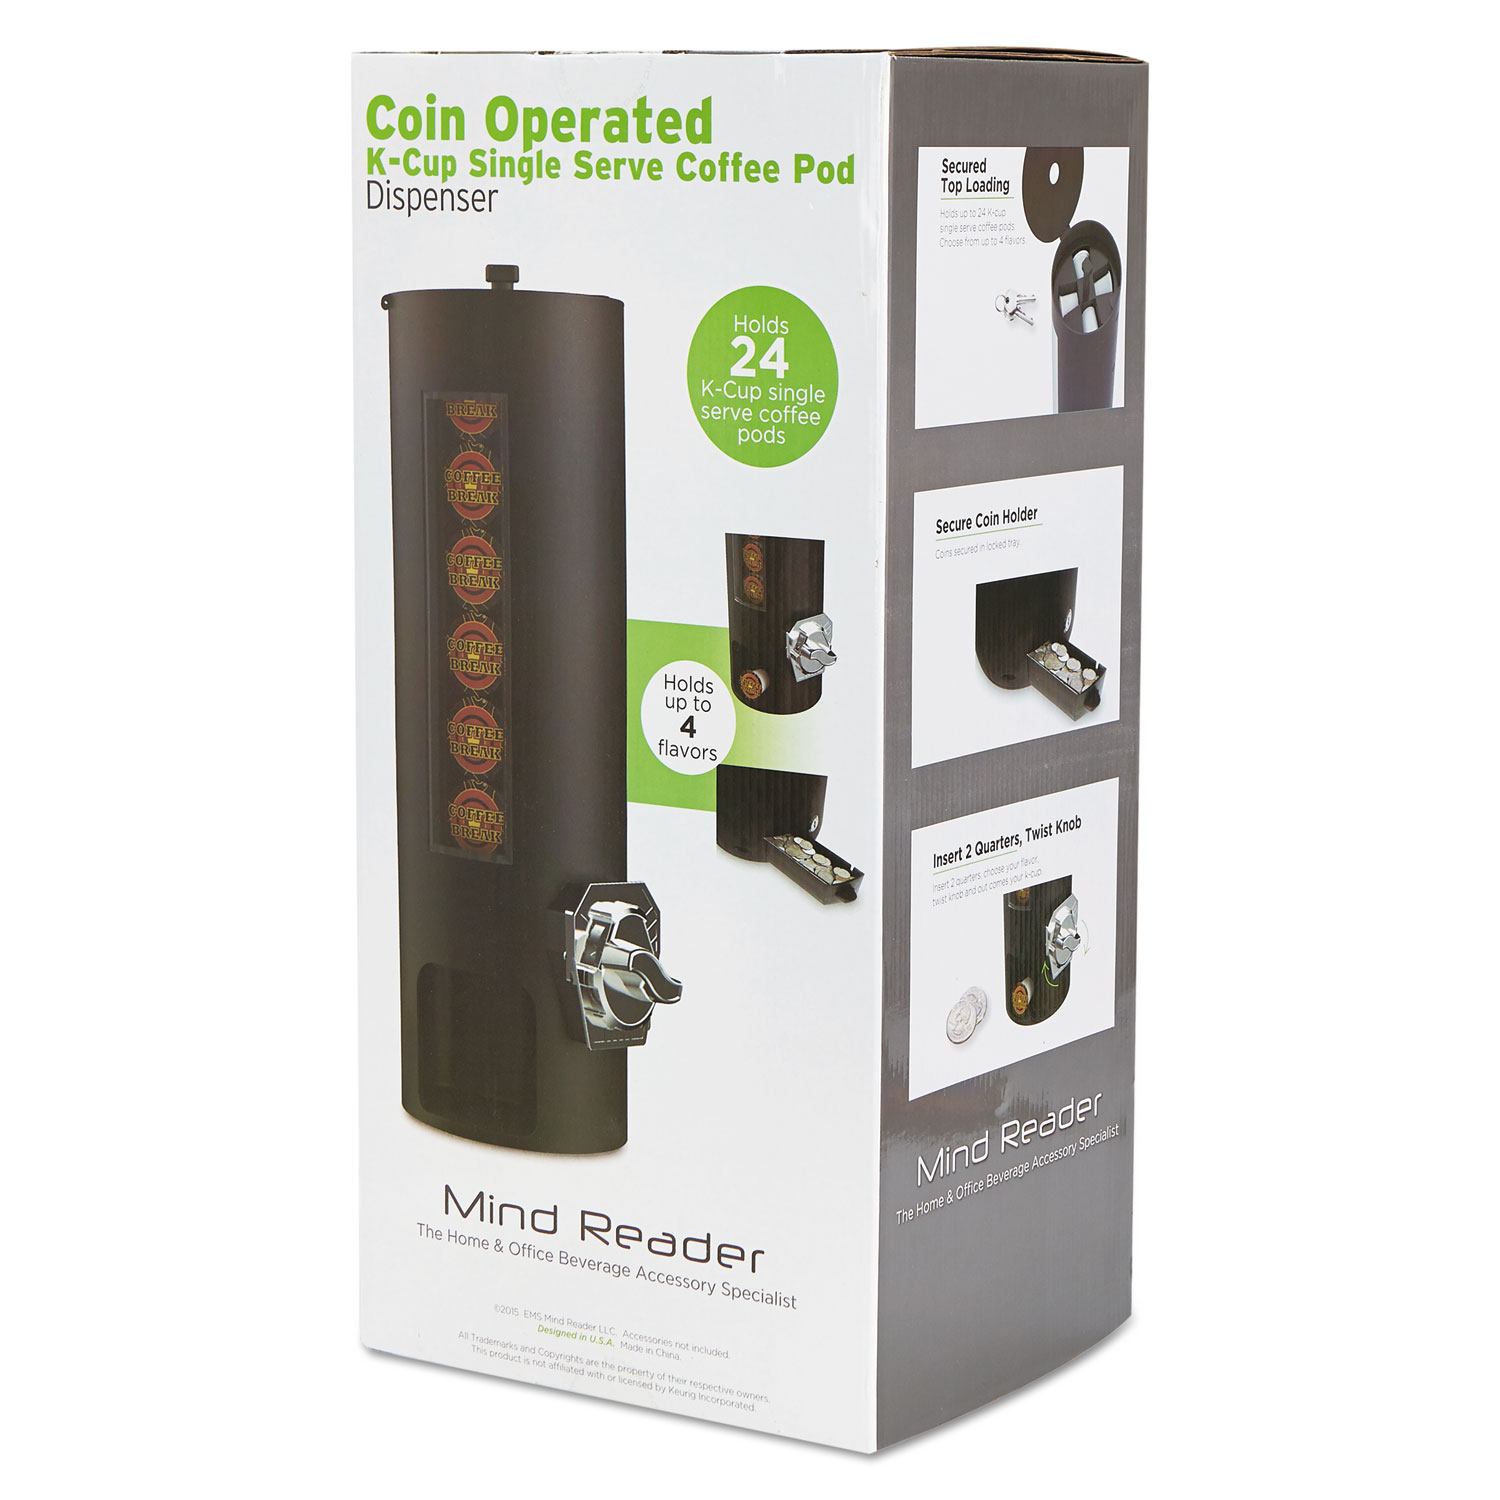 Coin Operated Coffee Pod Dispenser By Mind Reader Emscomdps01blk Ontimesupplies Com